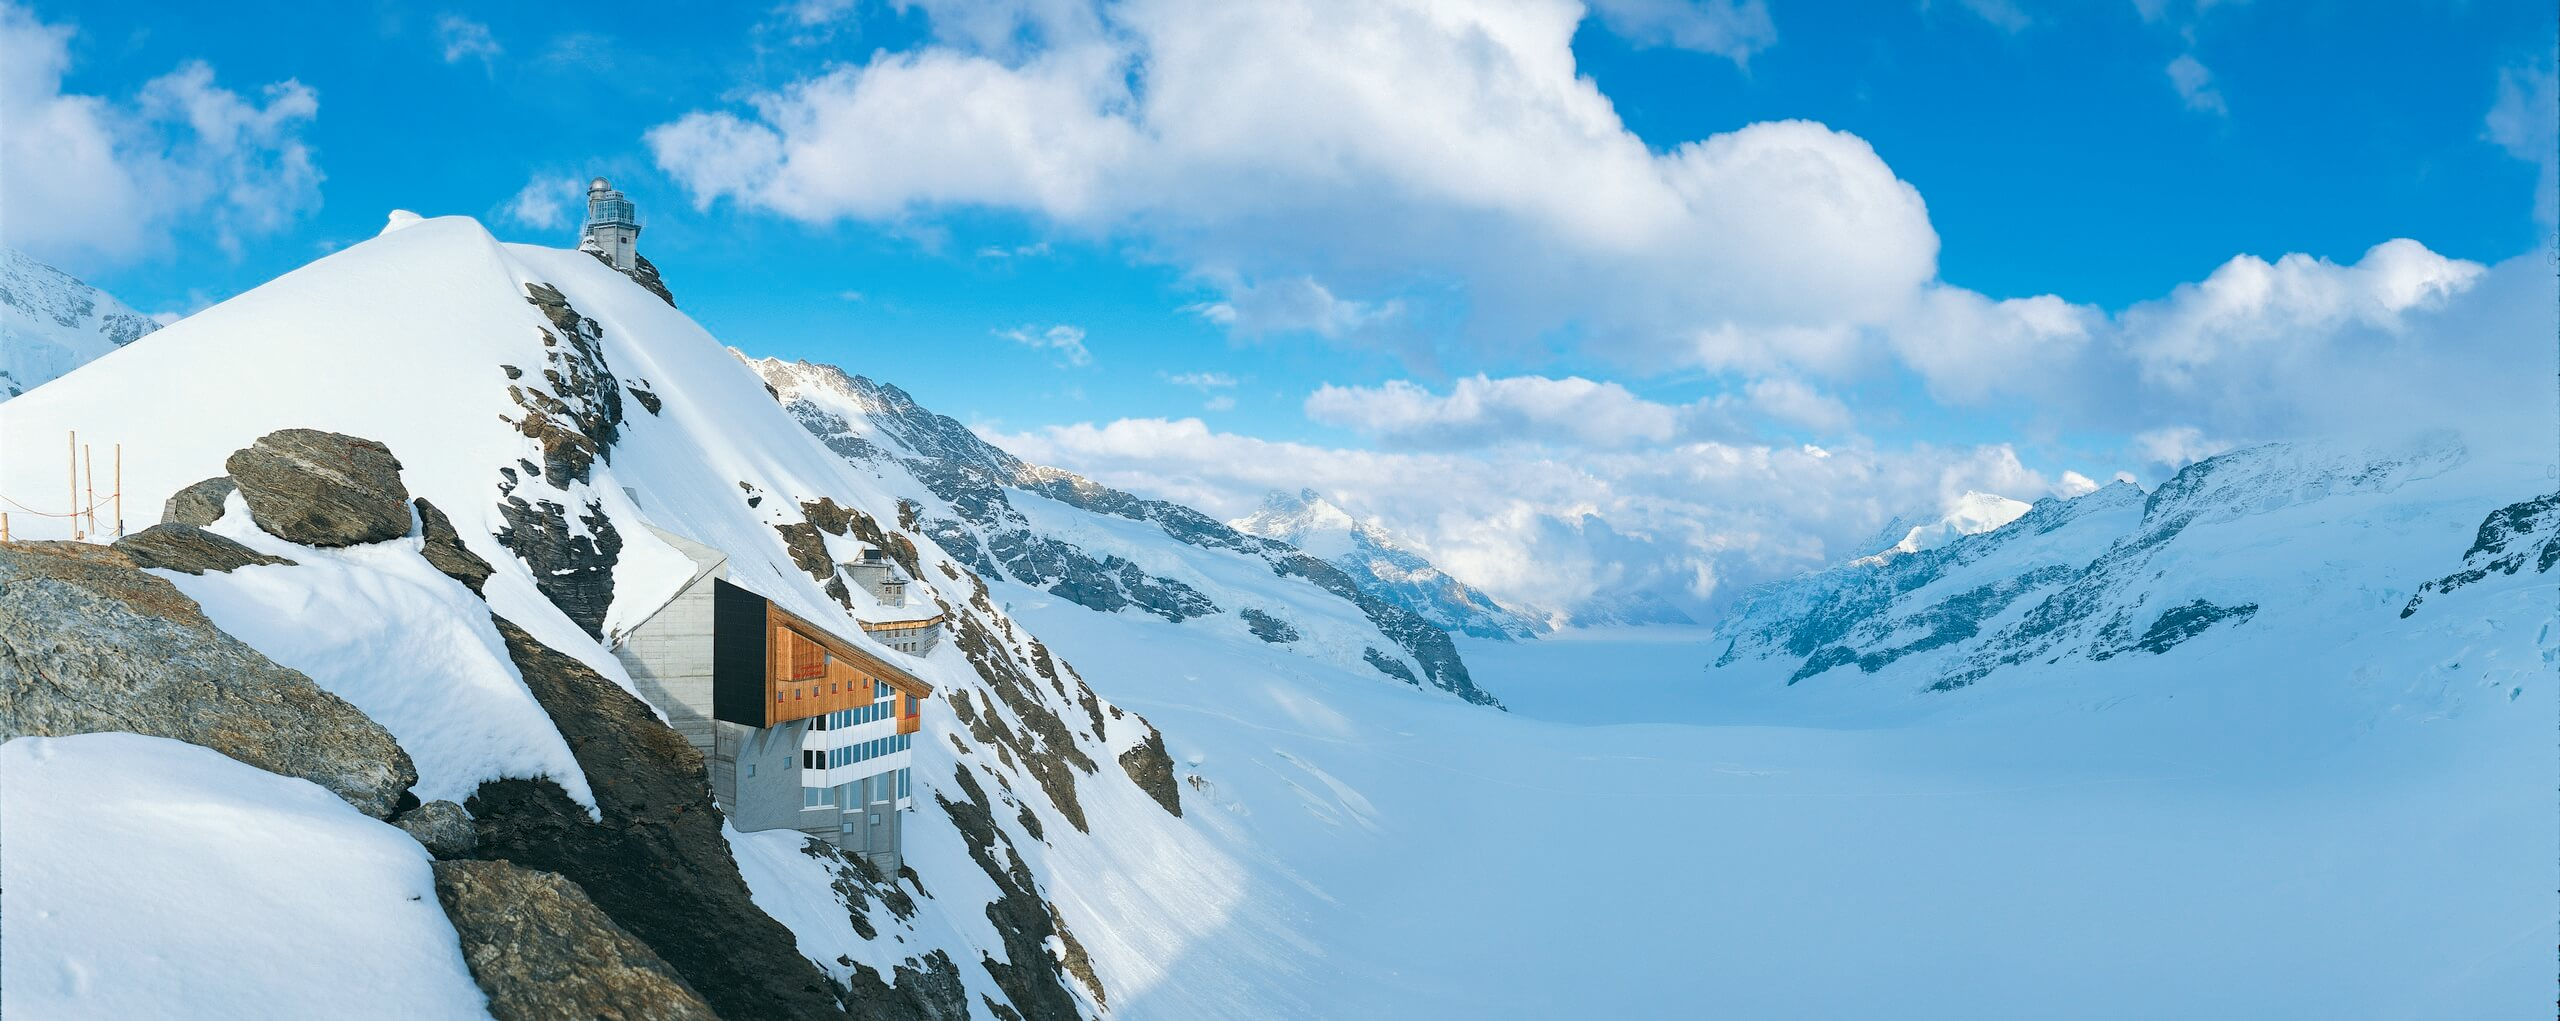 jungfraujoch-sphinx-best-of-switzerland